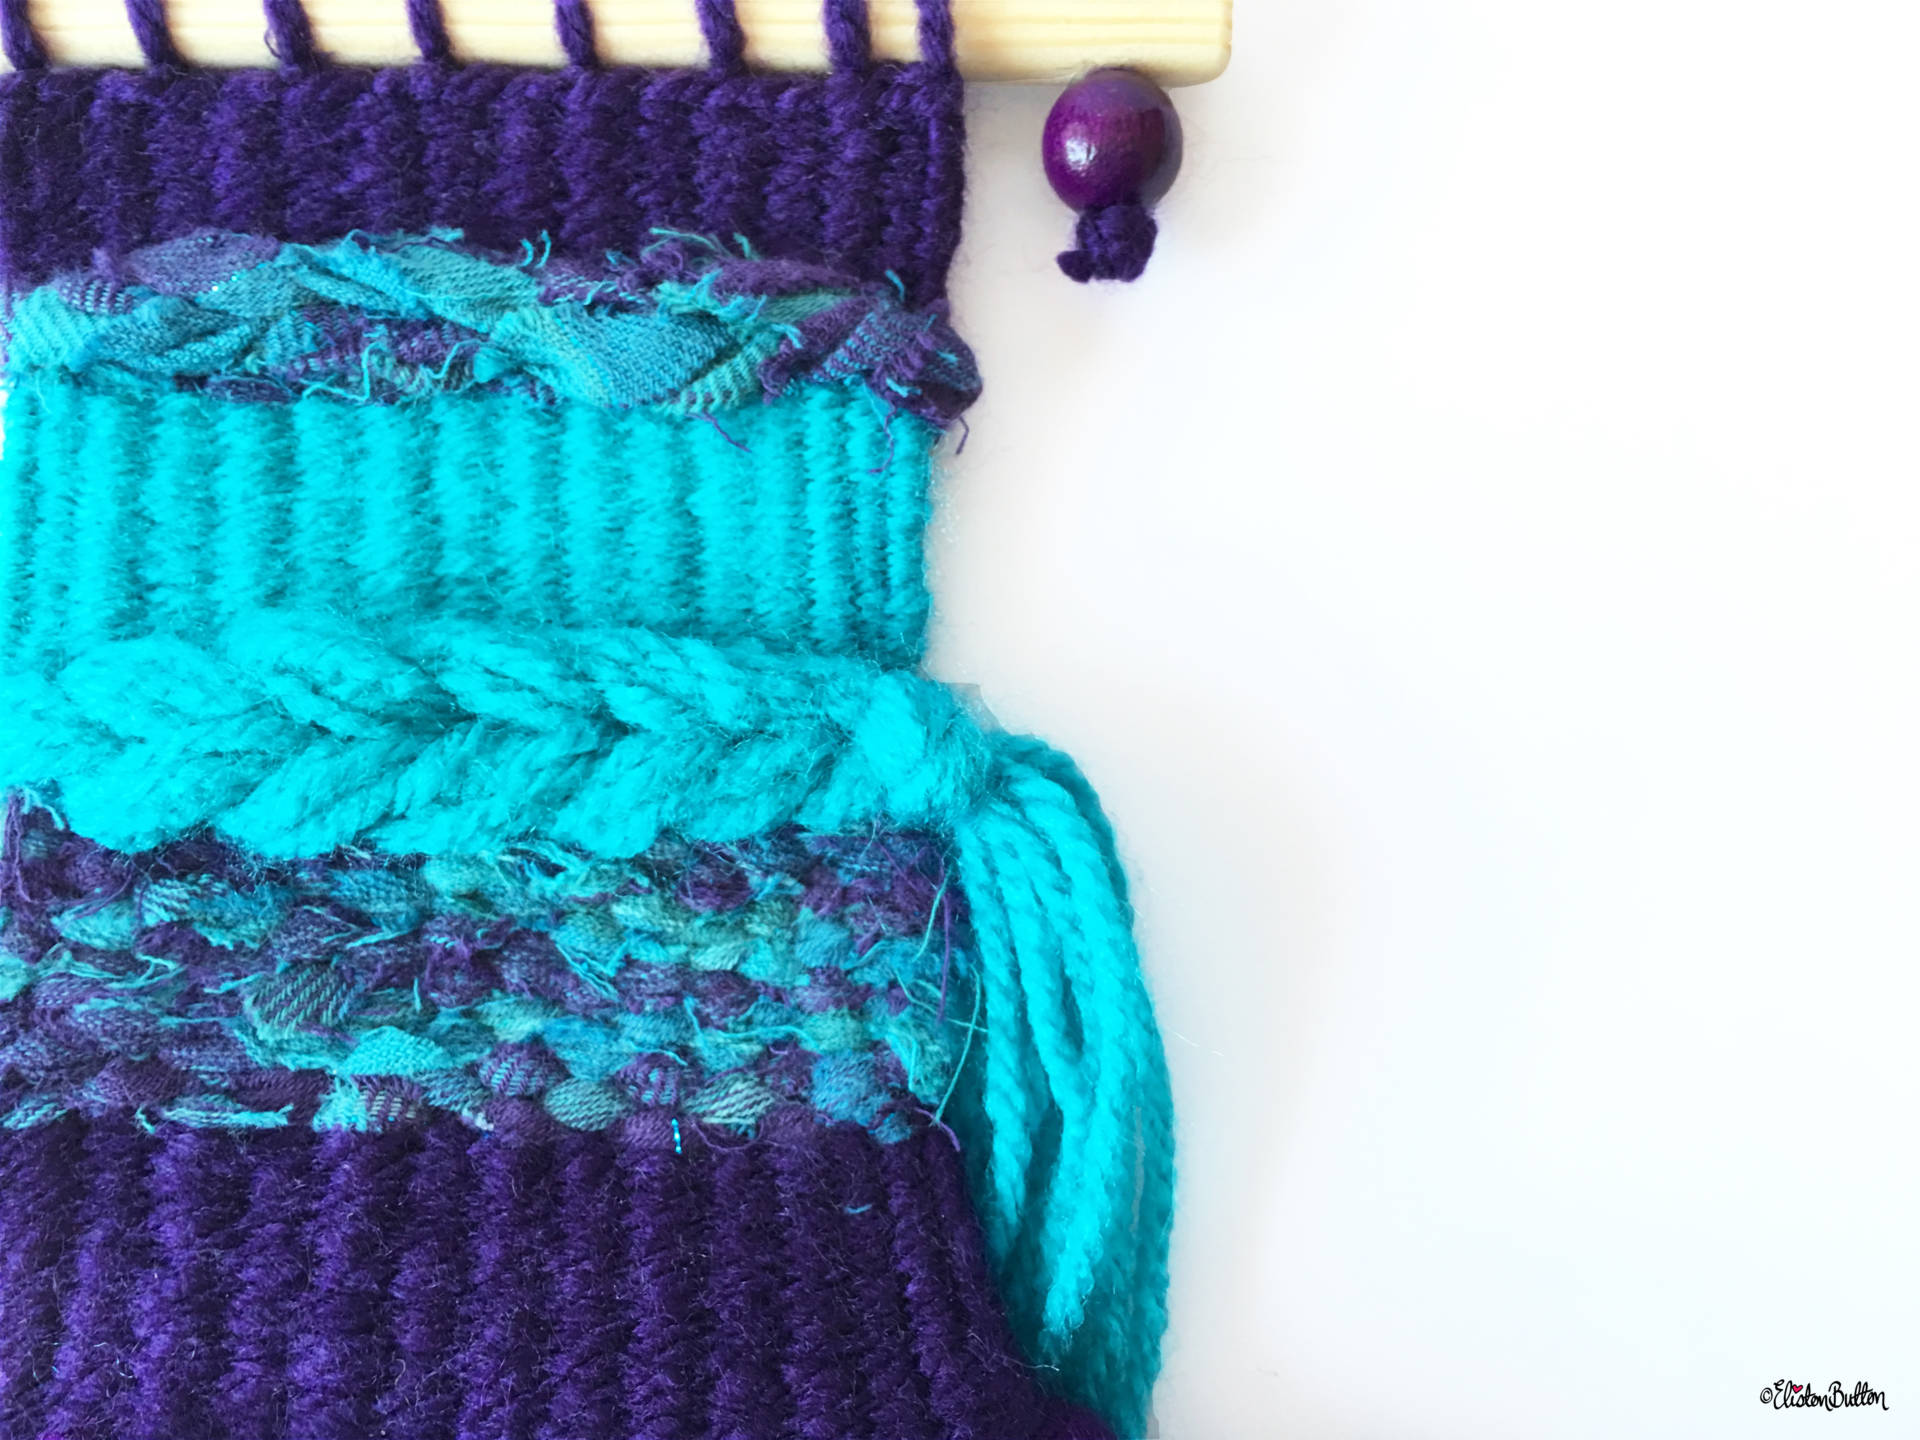 Purple and Turquoise Mini Woven Wall Hanging Close up with Bead and Wooden Dowel - Create 30 - No.2 - Mini Woven Wall Hangings at www.elistonbutton.com - Eliston Button - That Crafty Kid – Art, Design, Craft & Adventure.